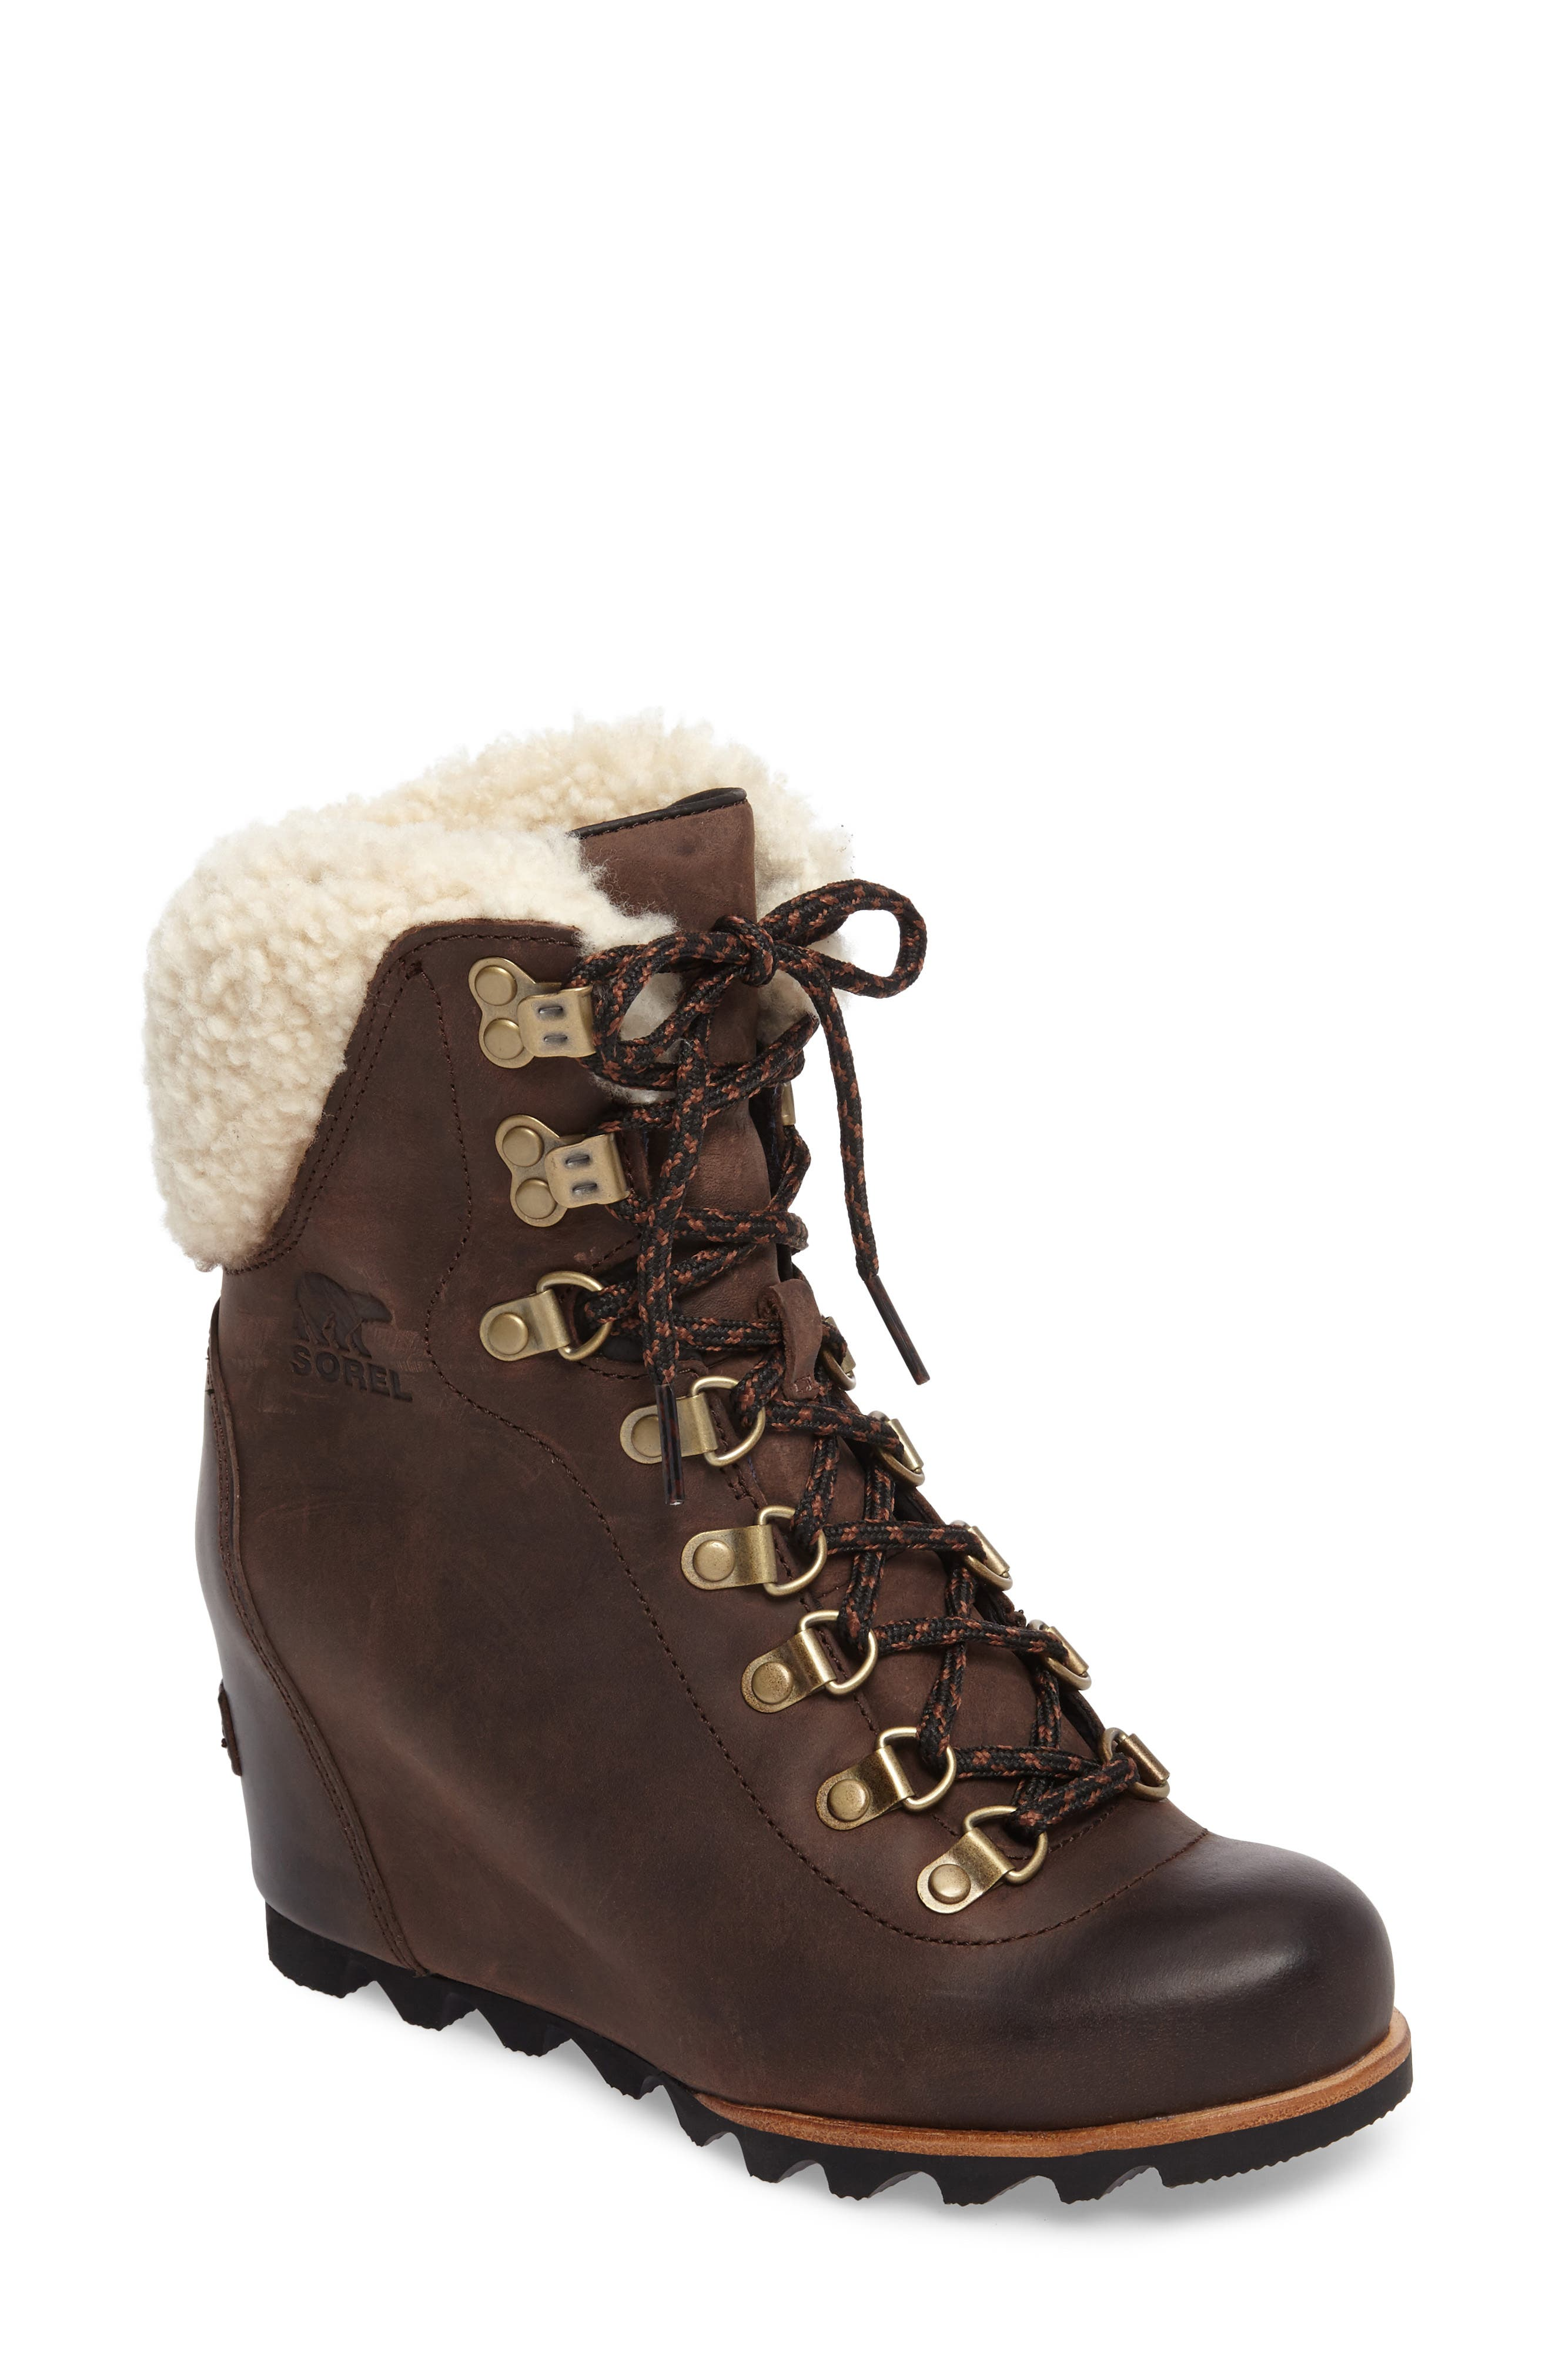 Alternate Image 1 Selected - SOREL Conquest Genuine Shearling Cuff Waterproof Boot (Women)